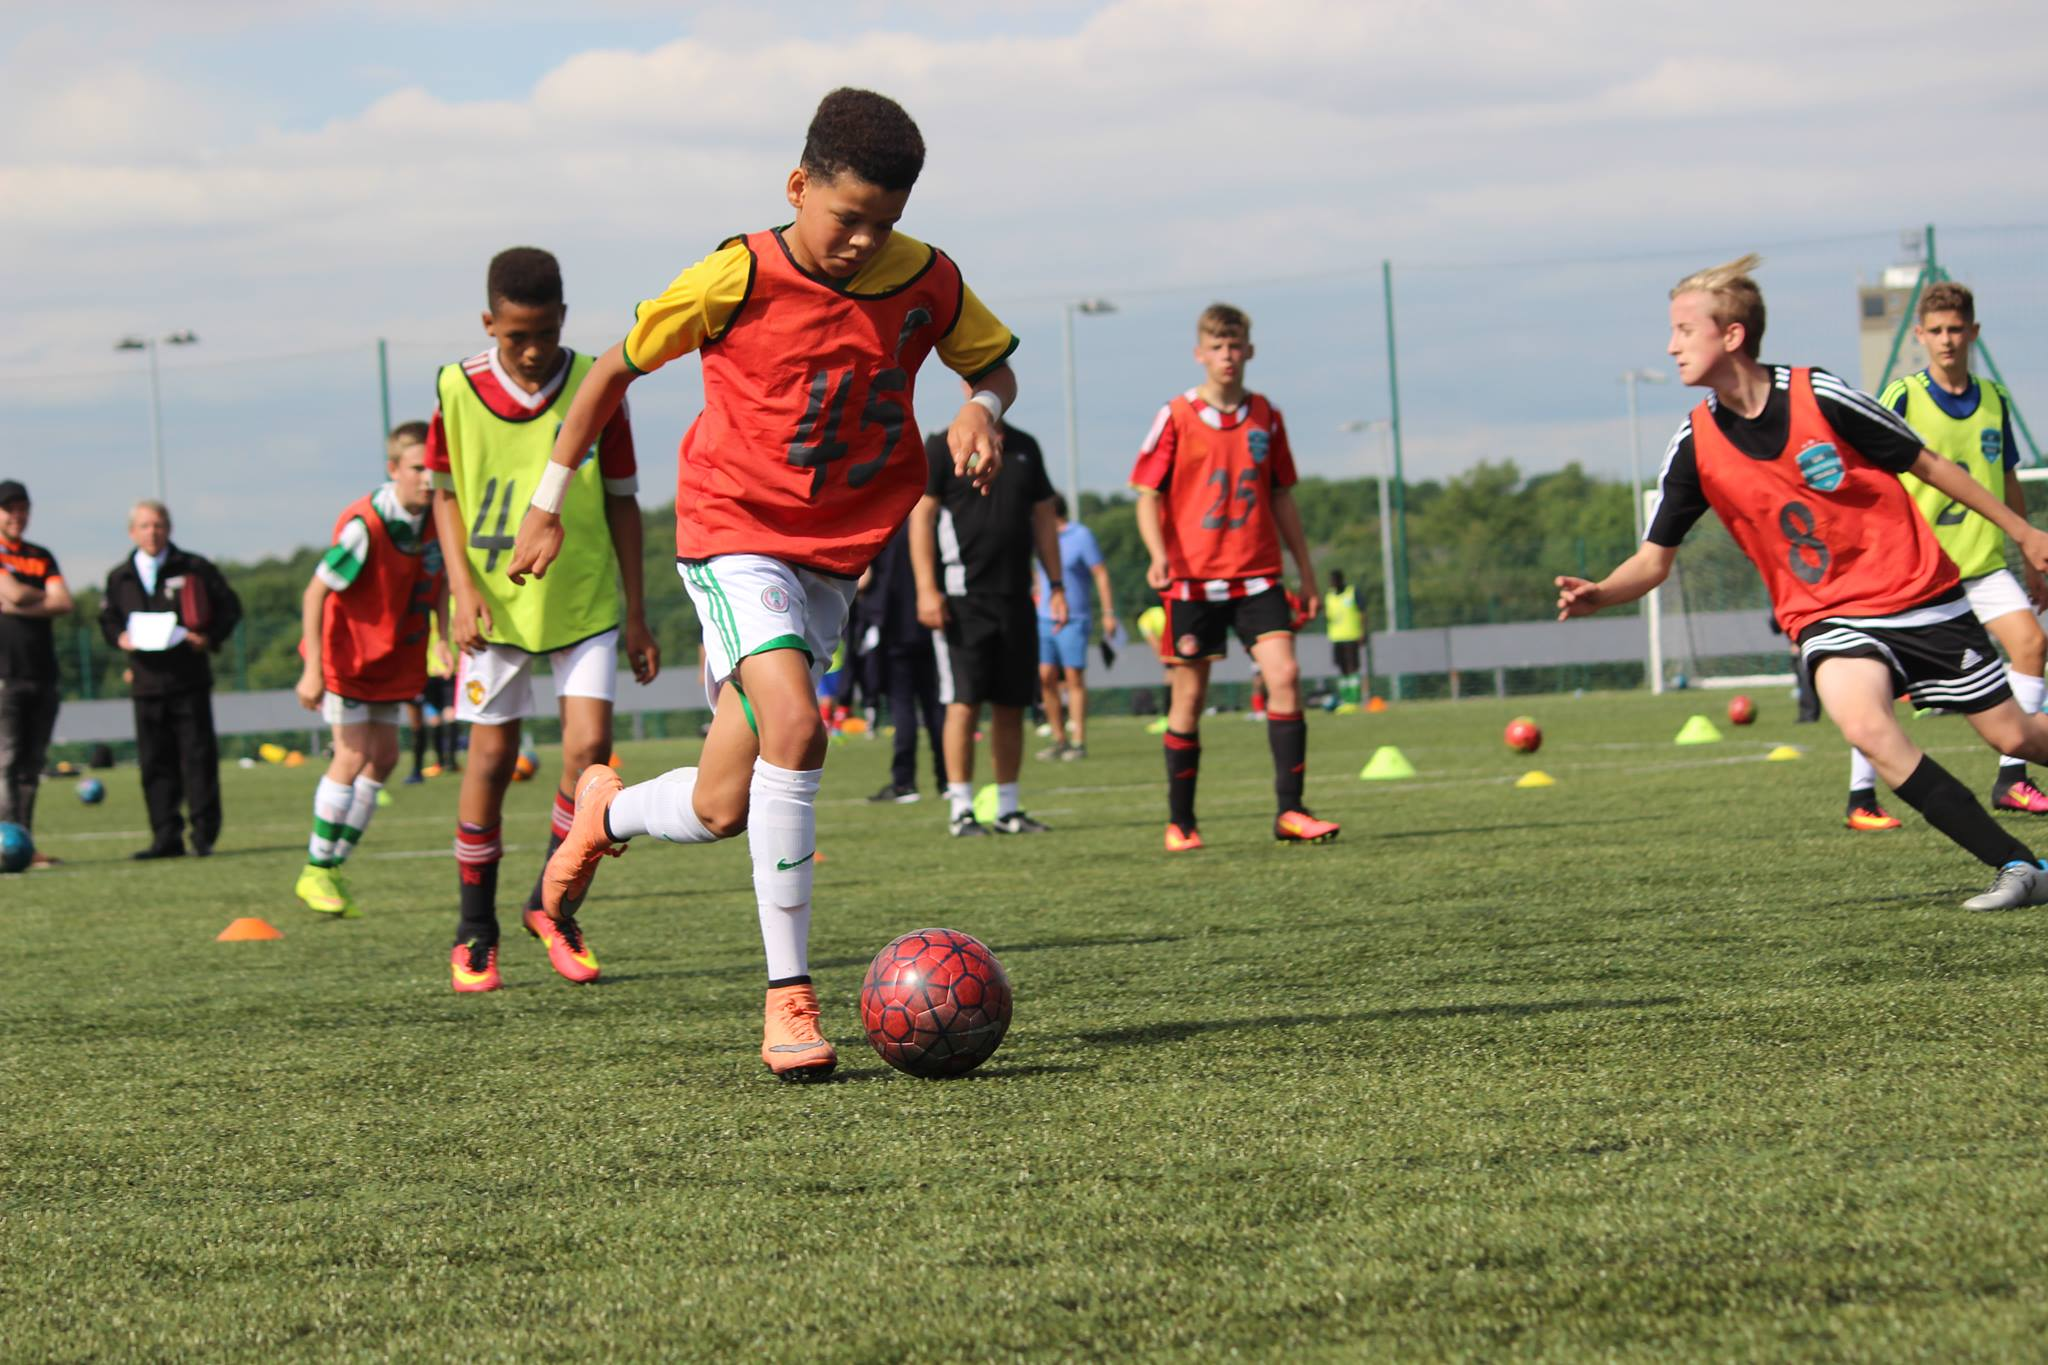 Birmingham Football Trial - August 29th - PM  - Ages  10 to 14 - HURRY, 4 spaces left at this price!